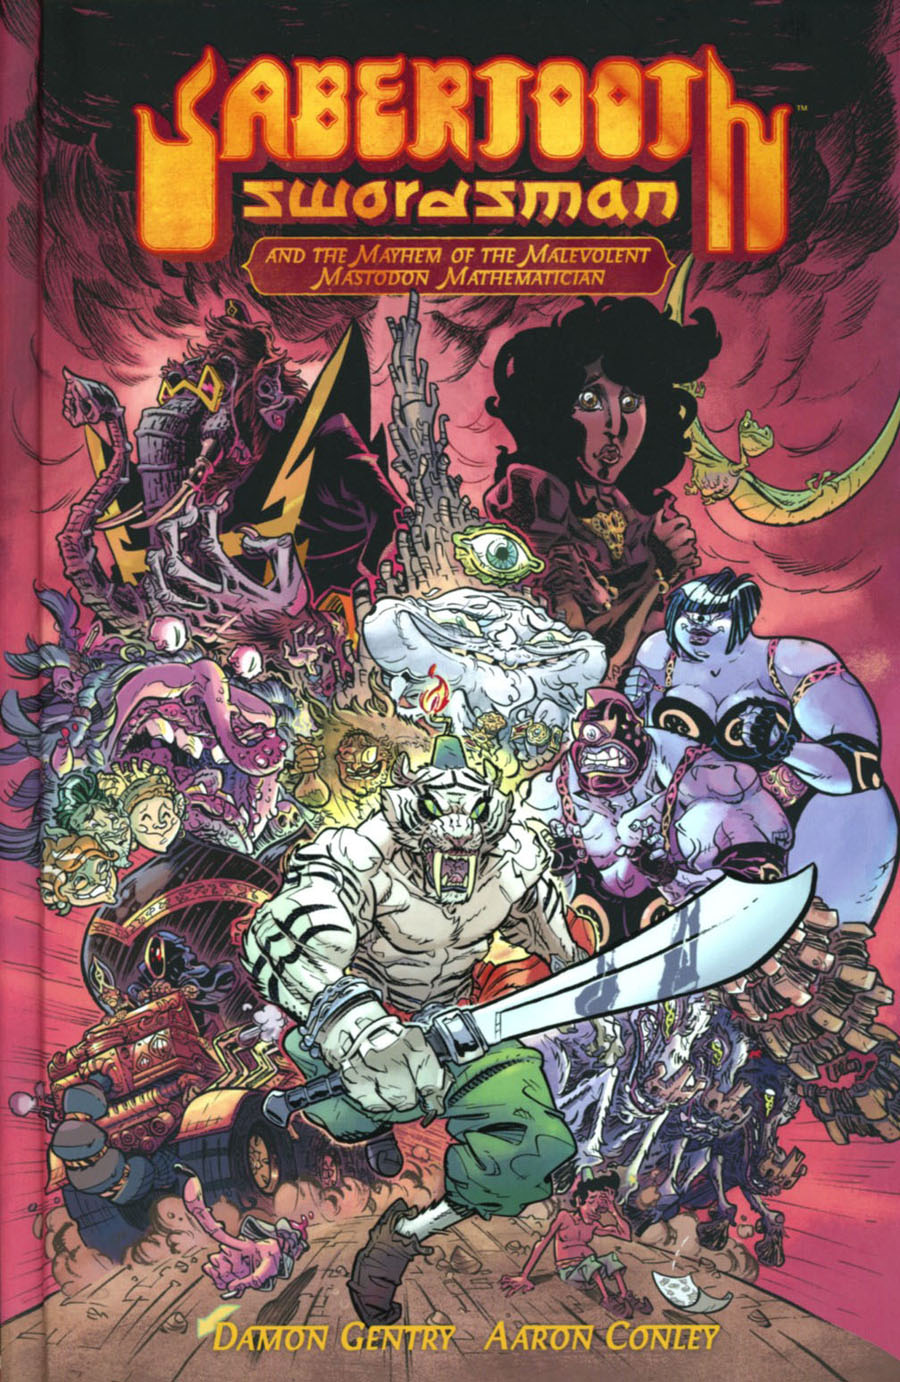 Sabertooth Swordsman Vol 1 Sabertooth Swordsman And The Malevolent Mastodon Mathematician HC 2nd Edition